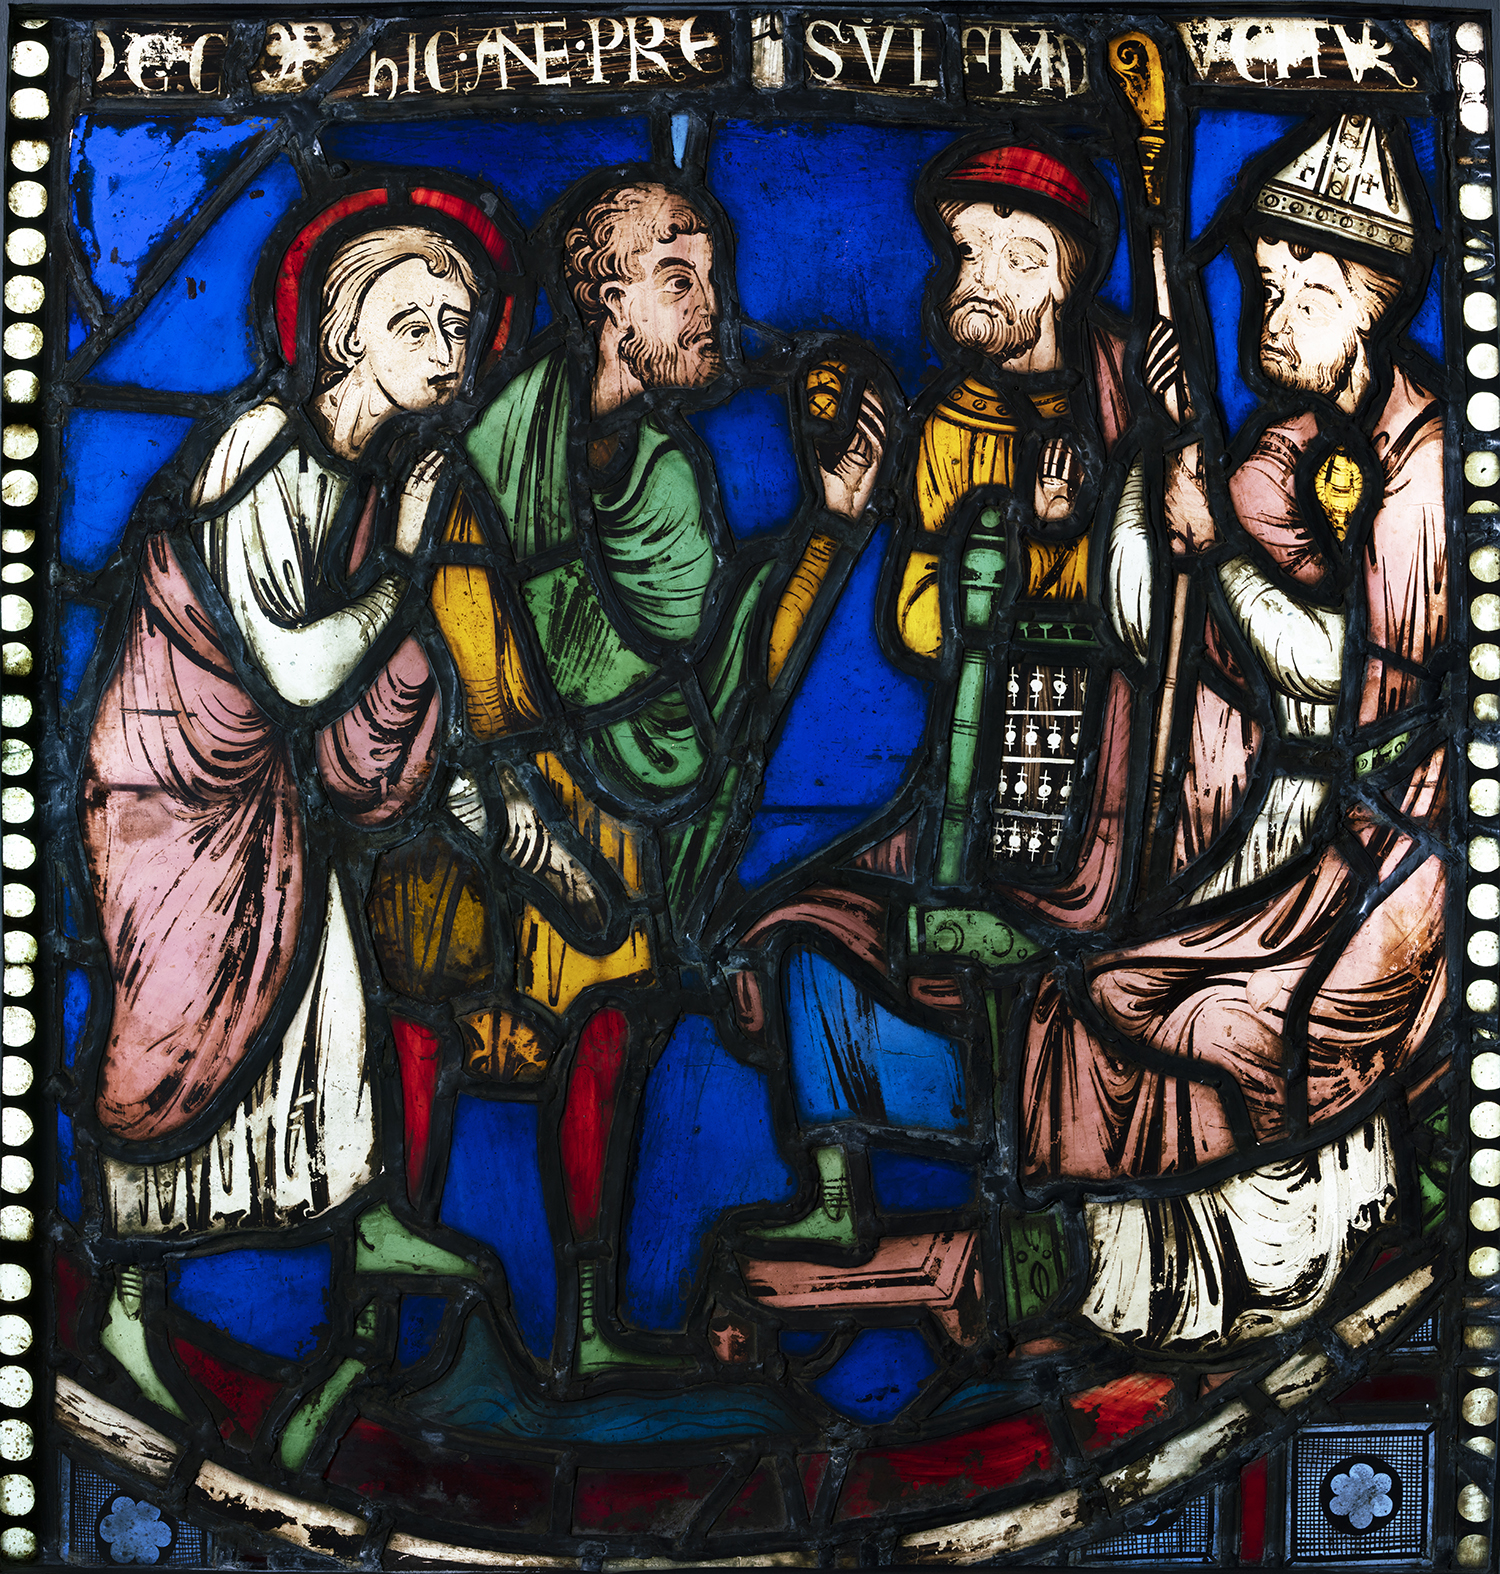 "Figure 8: Malchus is led before the bishop and prefect ("" hic ante presulum ducitur ""), from the Seven Sleepers of Ephesus window of the nave aisle of Rouen Cathedral, c. 1200-1203, now in Glencairn Museum (03.SG.51)."